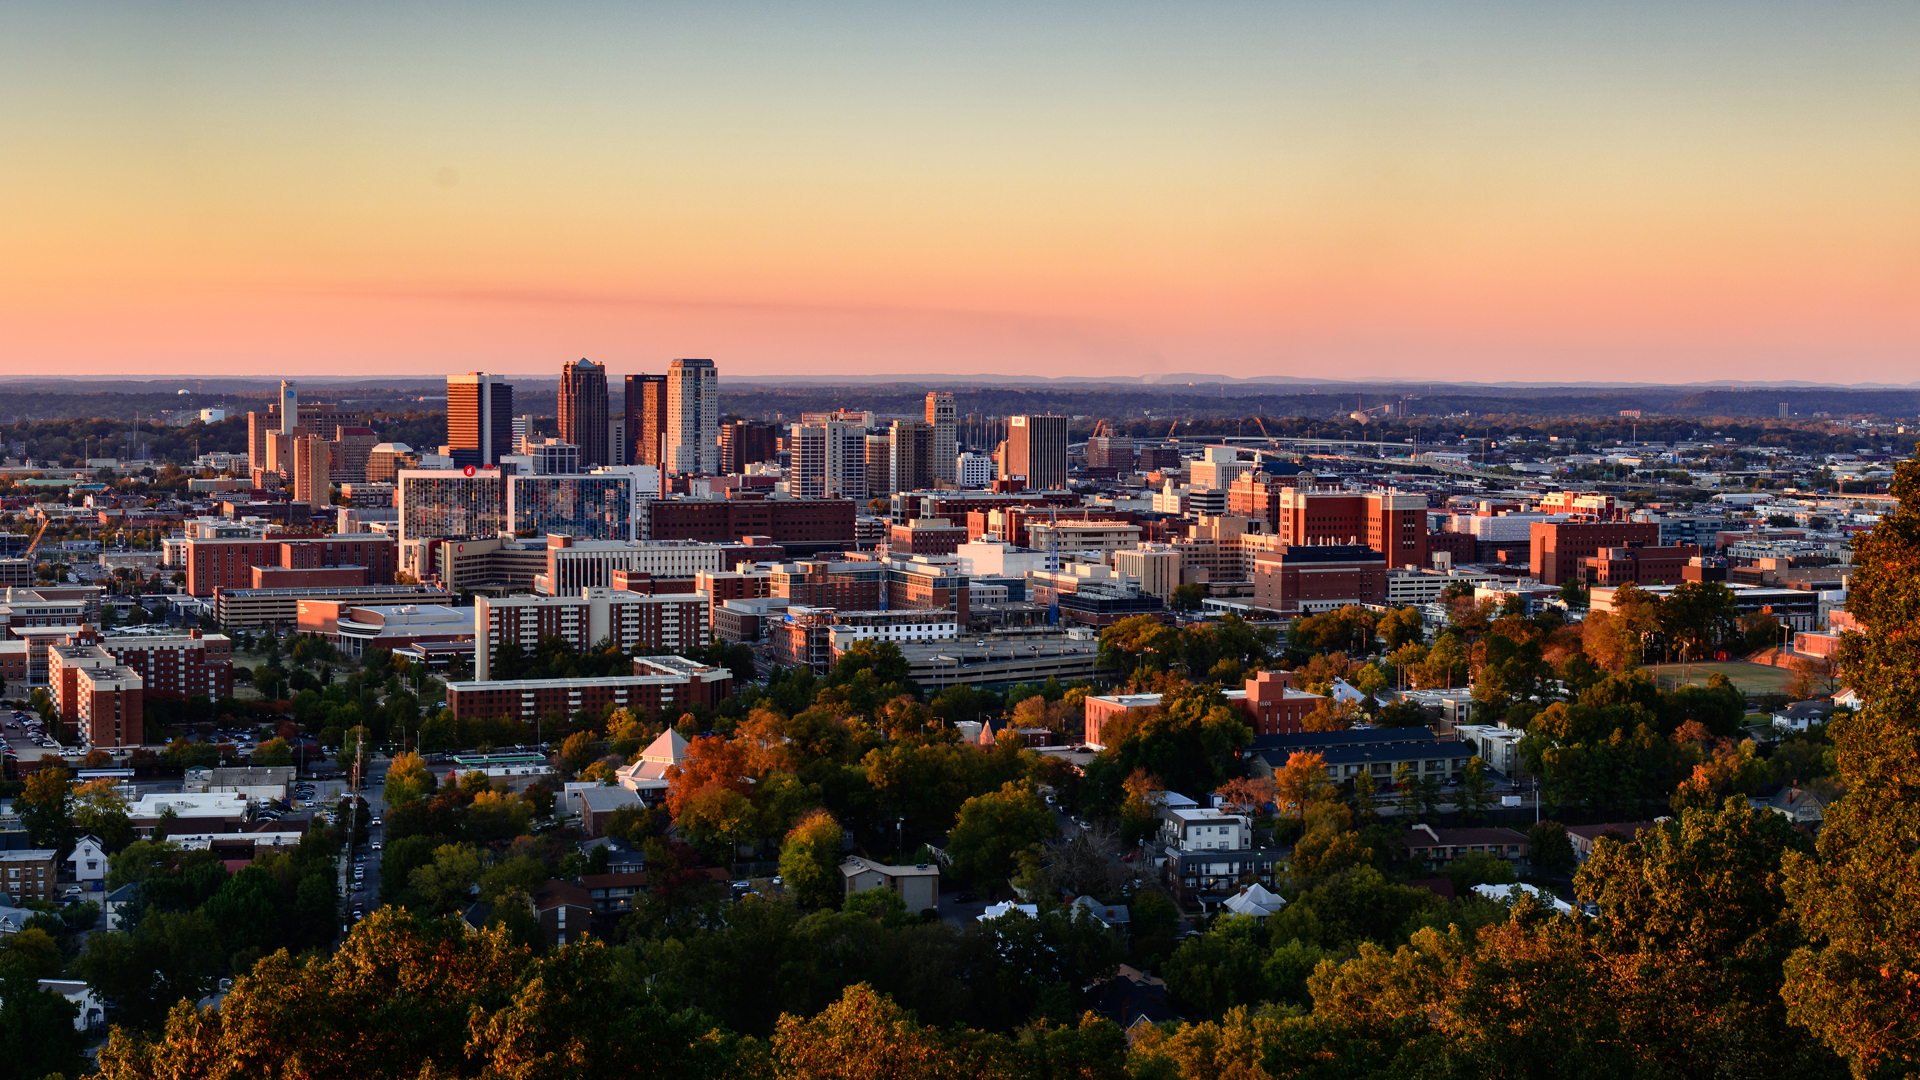 Birmingham skyline at sunset.